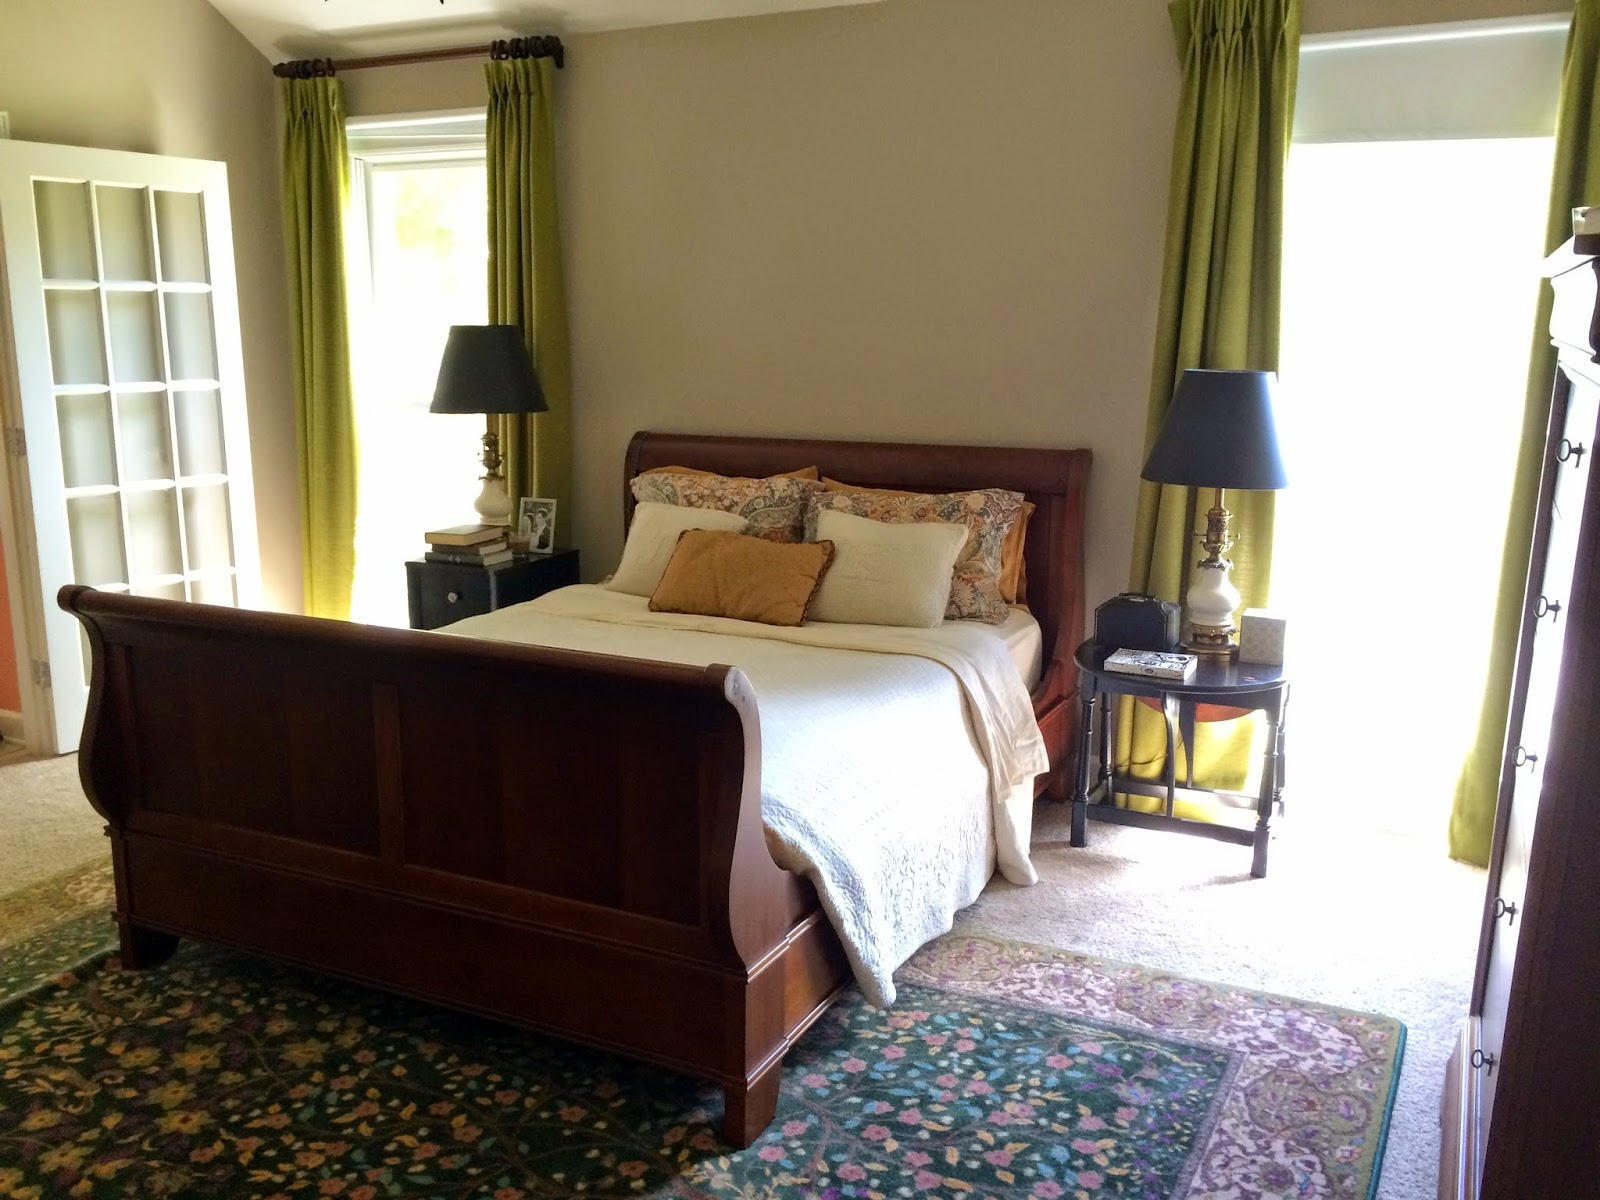 Bedroom Furniture 2014 librarian tells all: 2014